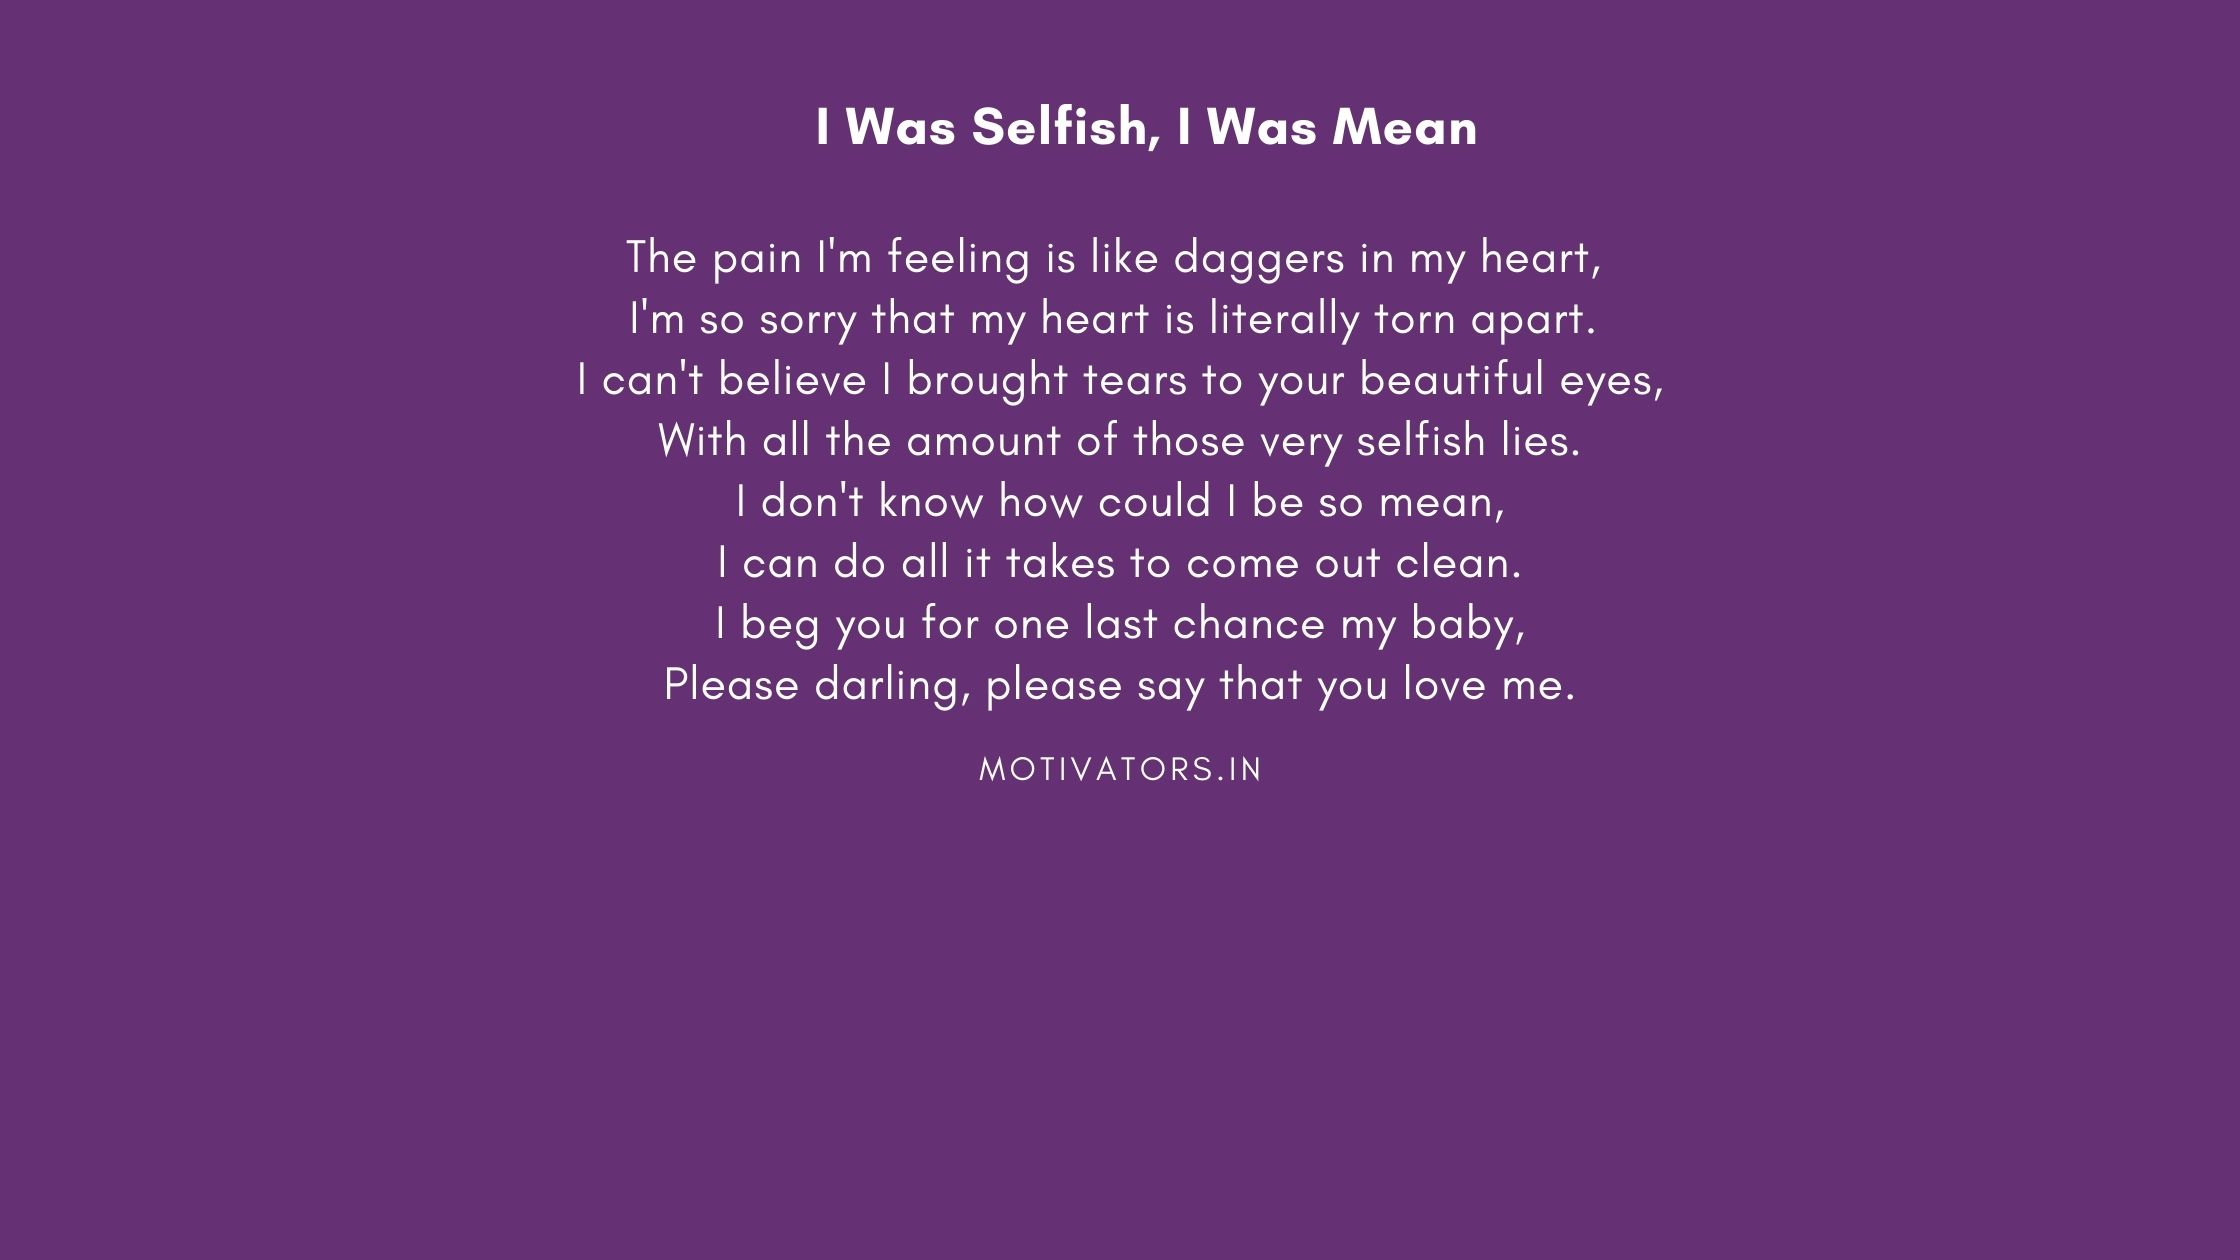 I Was Selfish, I Was Mean